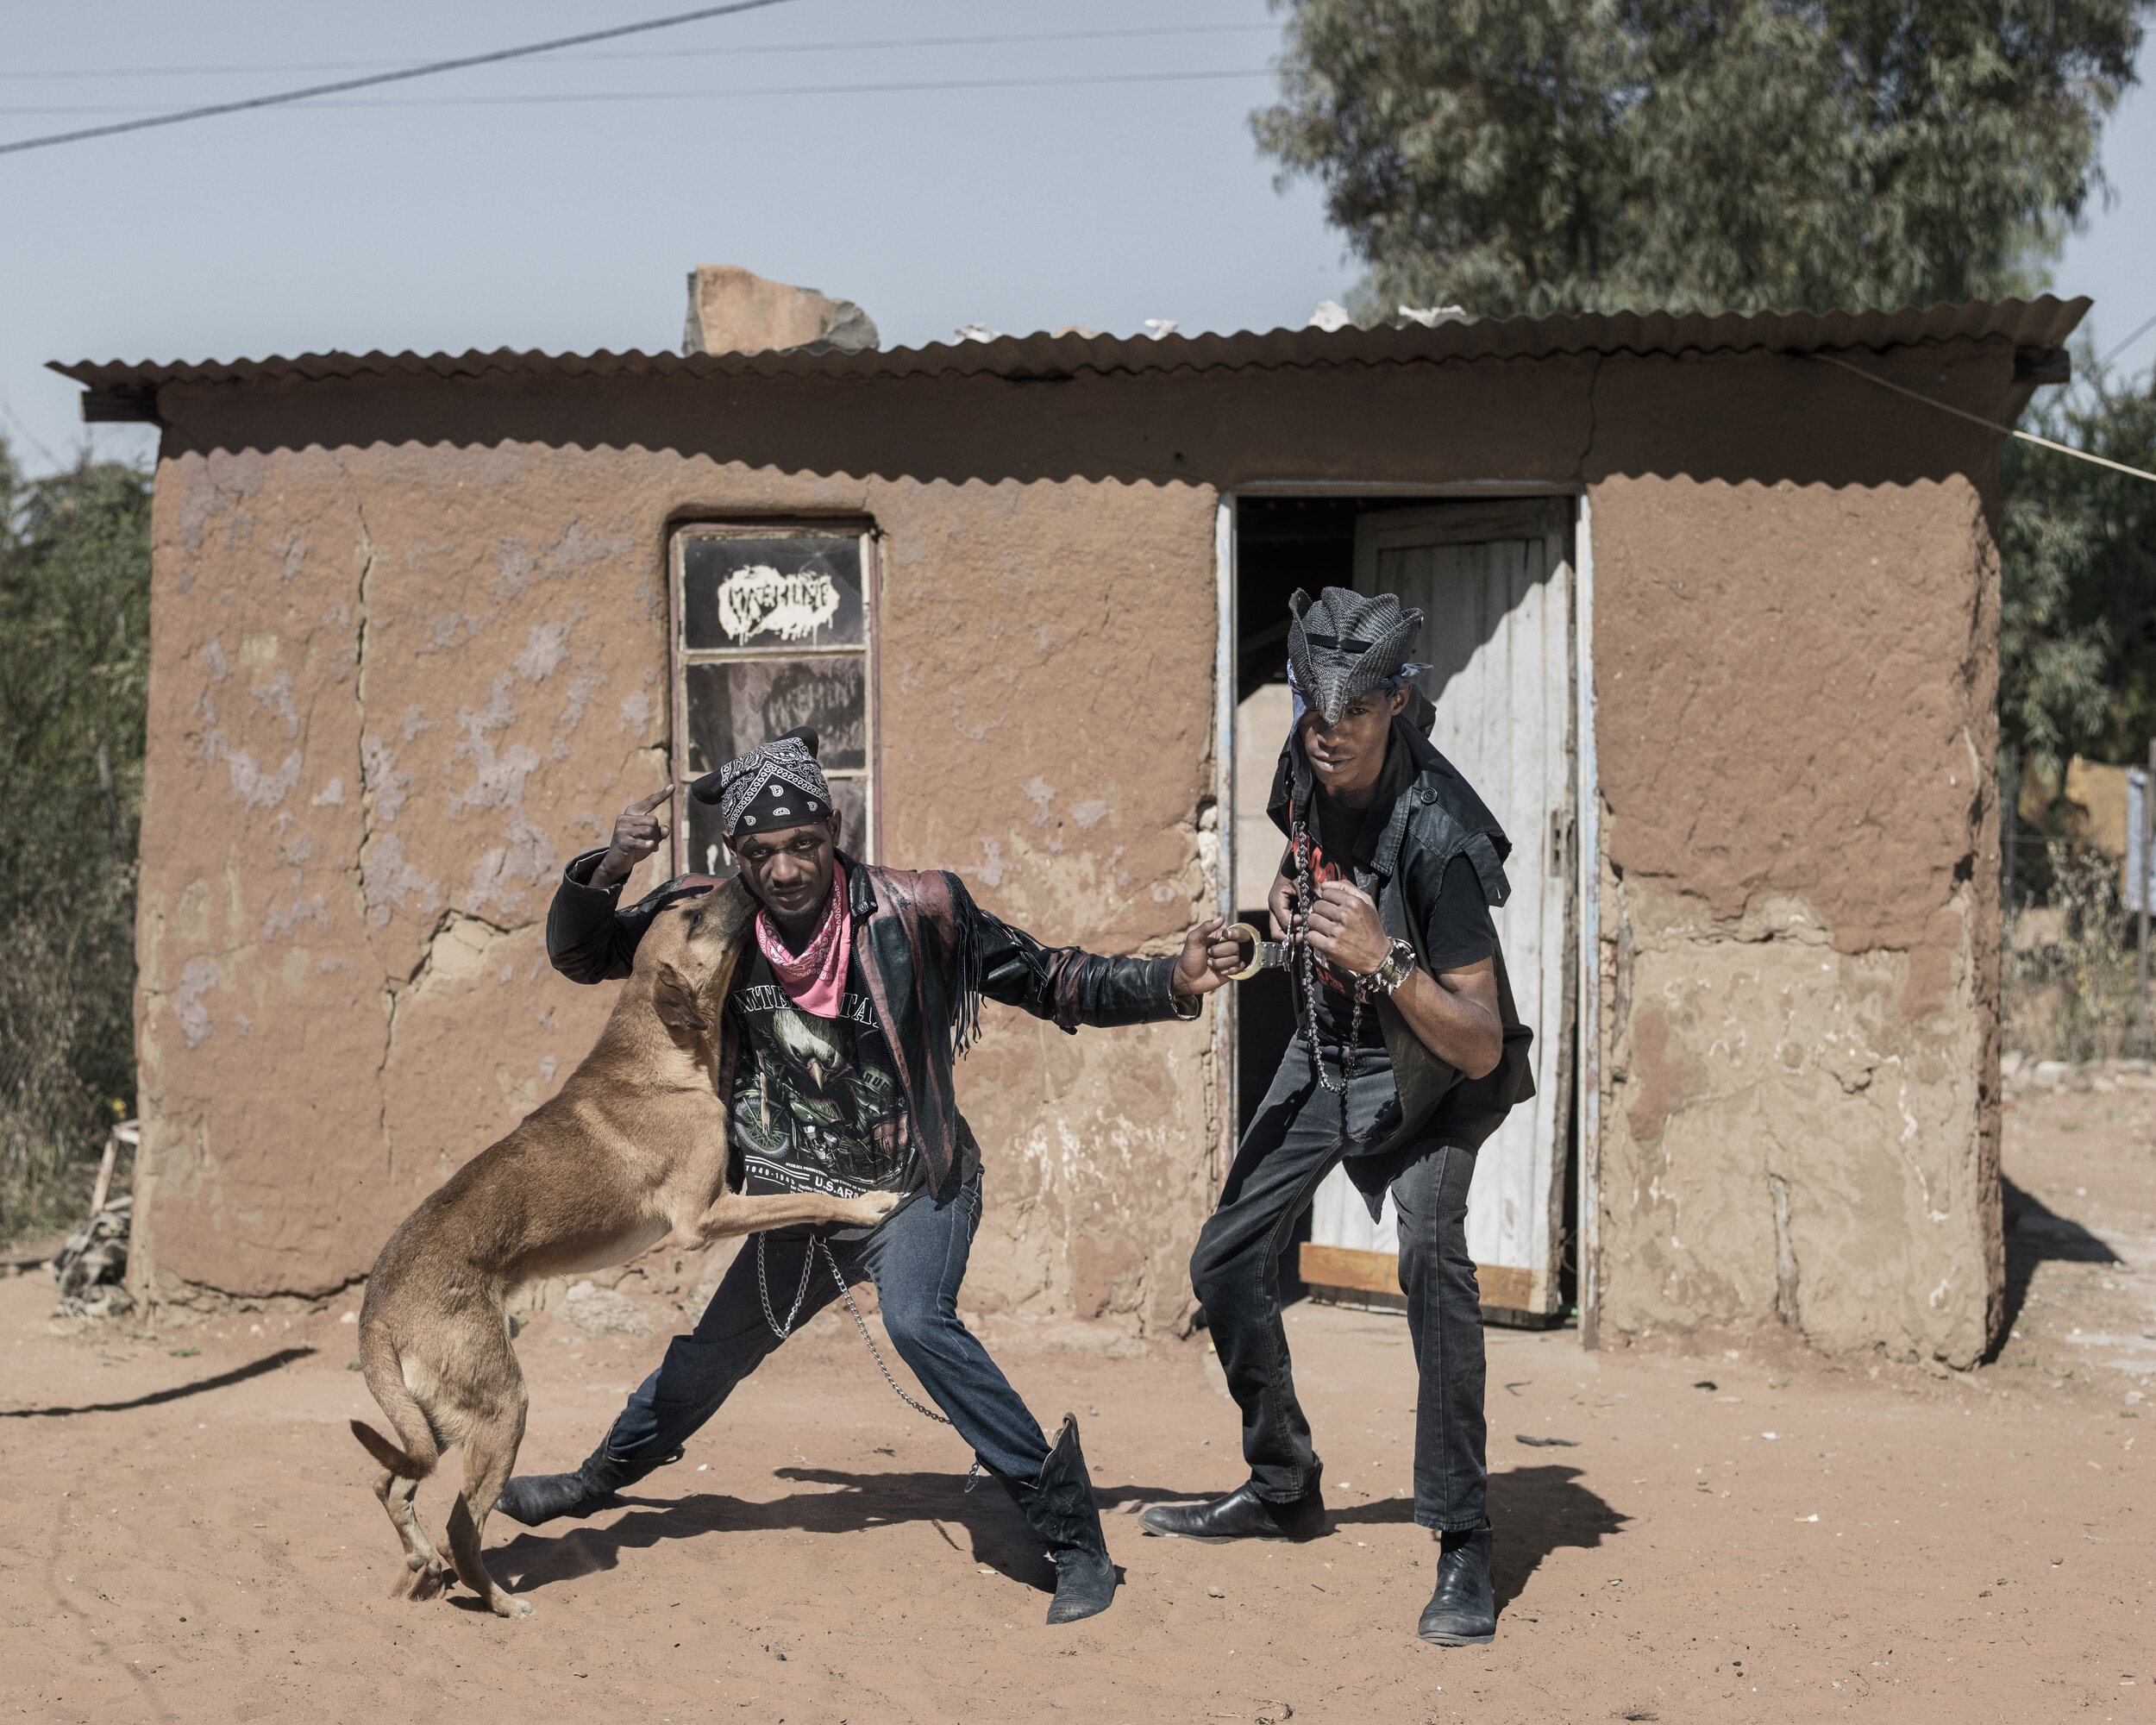 """Botswana, Ghanzi, May 20178th Anniversary Overthrust """"Winter Metal Mania Fest 2017""""  Kehumile Samo (right) and his Cousin Innocent Iane (left) with Lady, the dog. Kehumile studies Public Health in Ghanzi. Innocent wants to become a farmer. They share the house (in the picture behind them, left) on their uncles's property. Their favourites bands are Iron Maiden, Megadeath, Judas Priest but also Meatloaf. They don't have nicknames (yet).Pep Bonet / NOOR"""